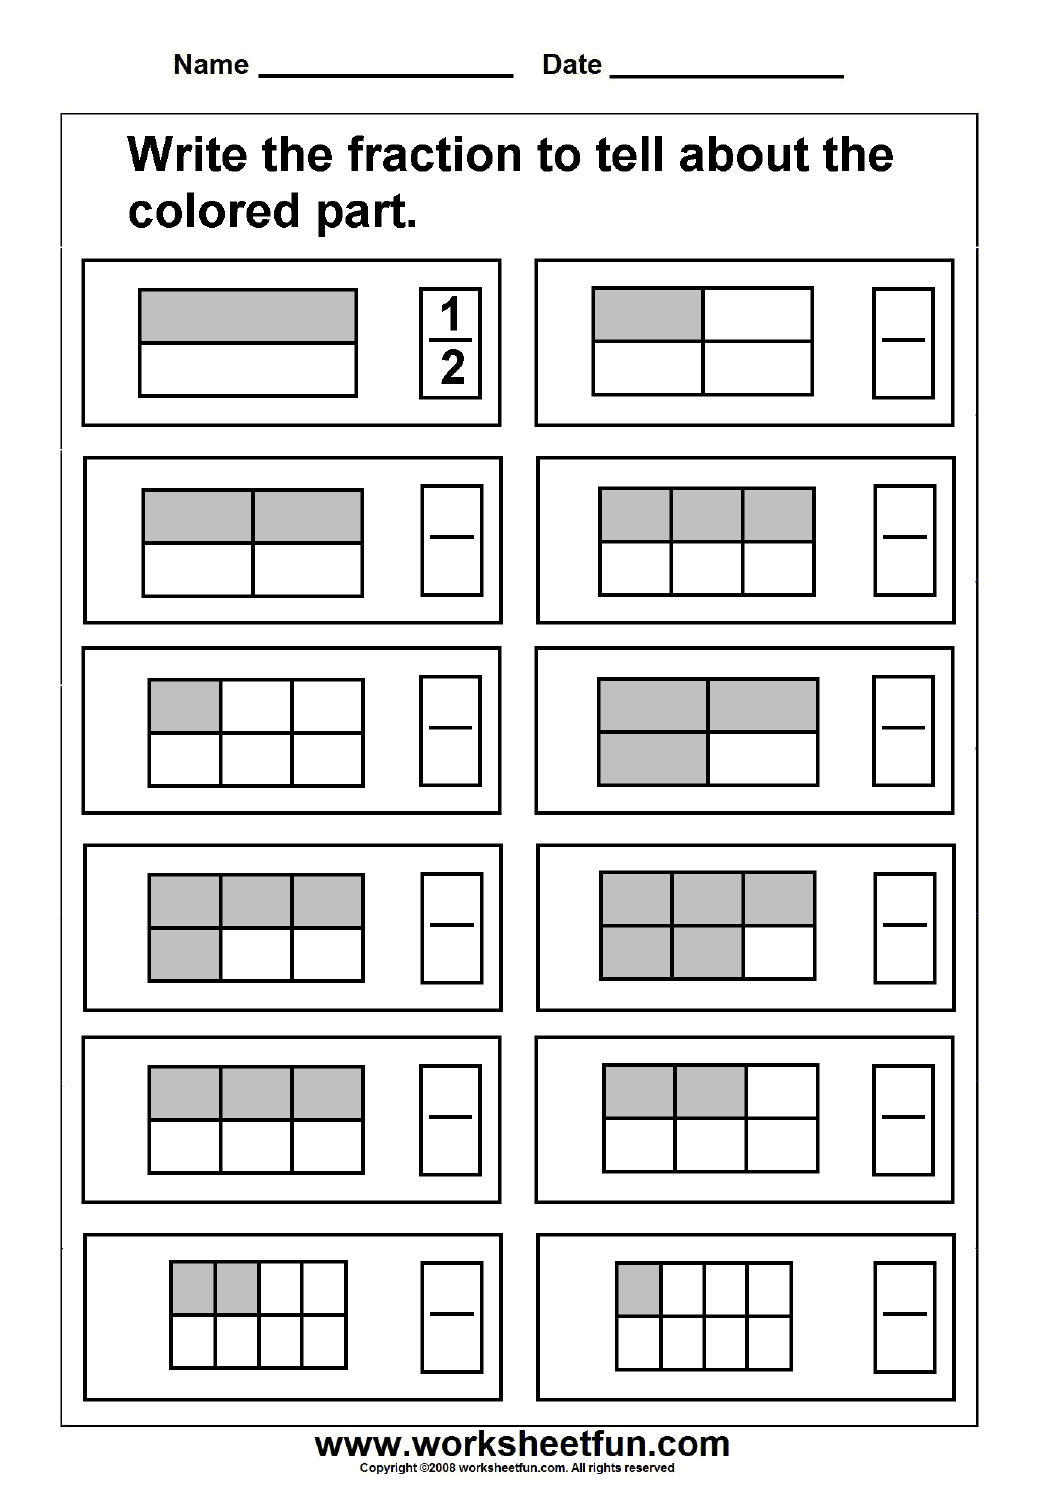 Fraction FREE Printable Worksheets Worksheetfun – Worksheet of Fractions